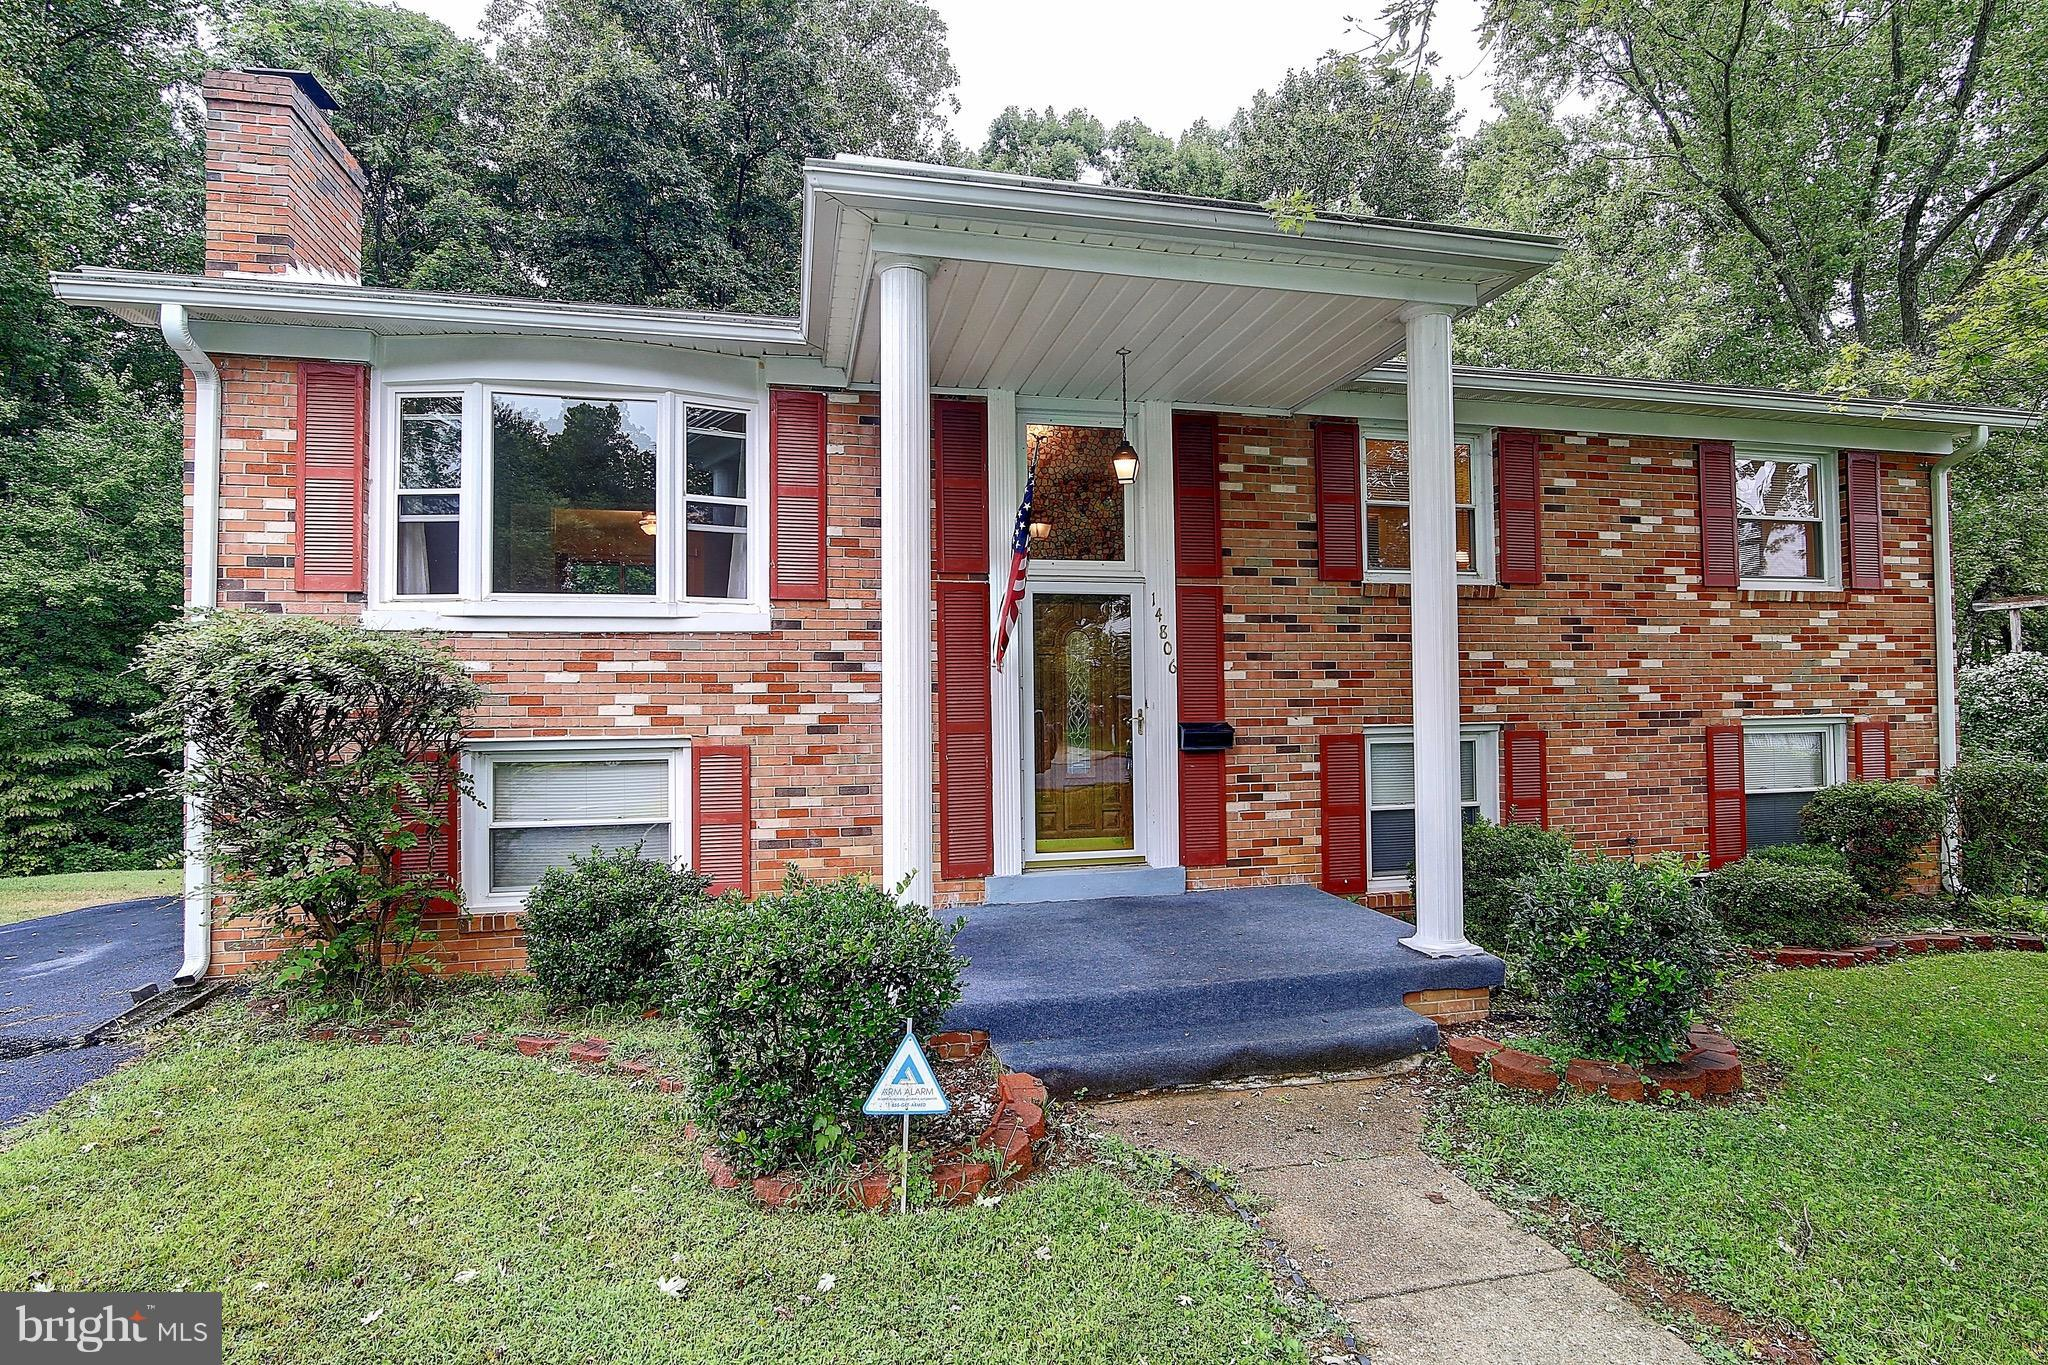 **Back On The Market, Previous Buyers Financing Fell Through,  ** Beautiful single family house on .25 acre lot. Recently updated throughout. Hardwood floors, new HVAC(2017), new electrical panel(2018), upgraded kitchen with ss appliances, granite counter tops, large tile floor. All bathrooms recently updated, large master bedroom with dual closets. Two storage sheds on large yard with privacy, backing to woods. Extended driveway. No HOA!